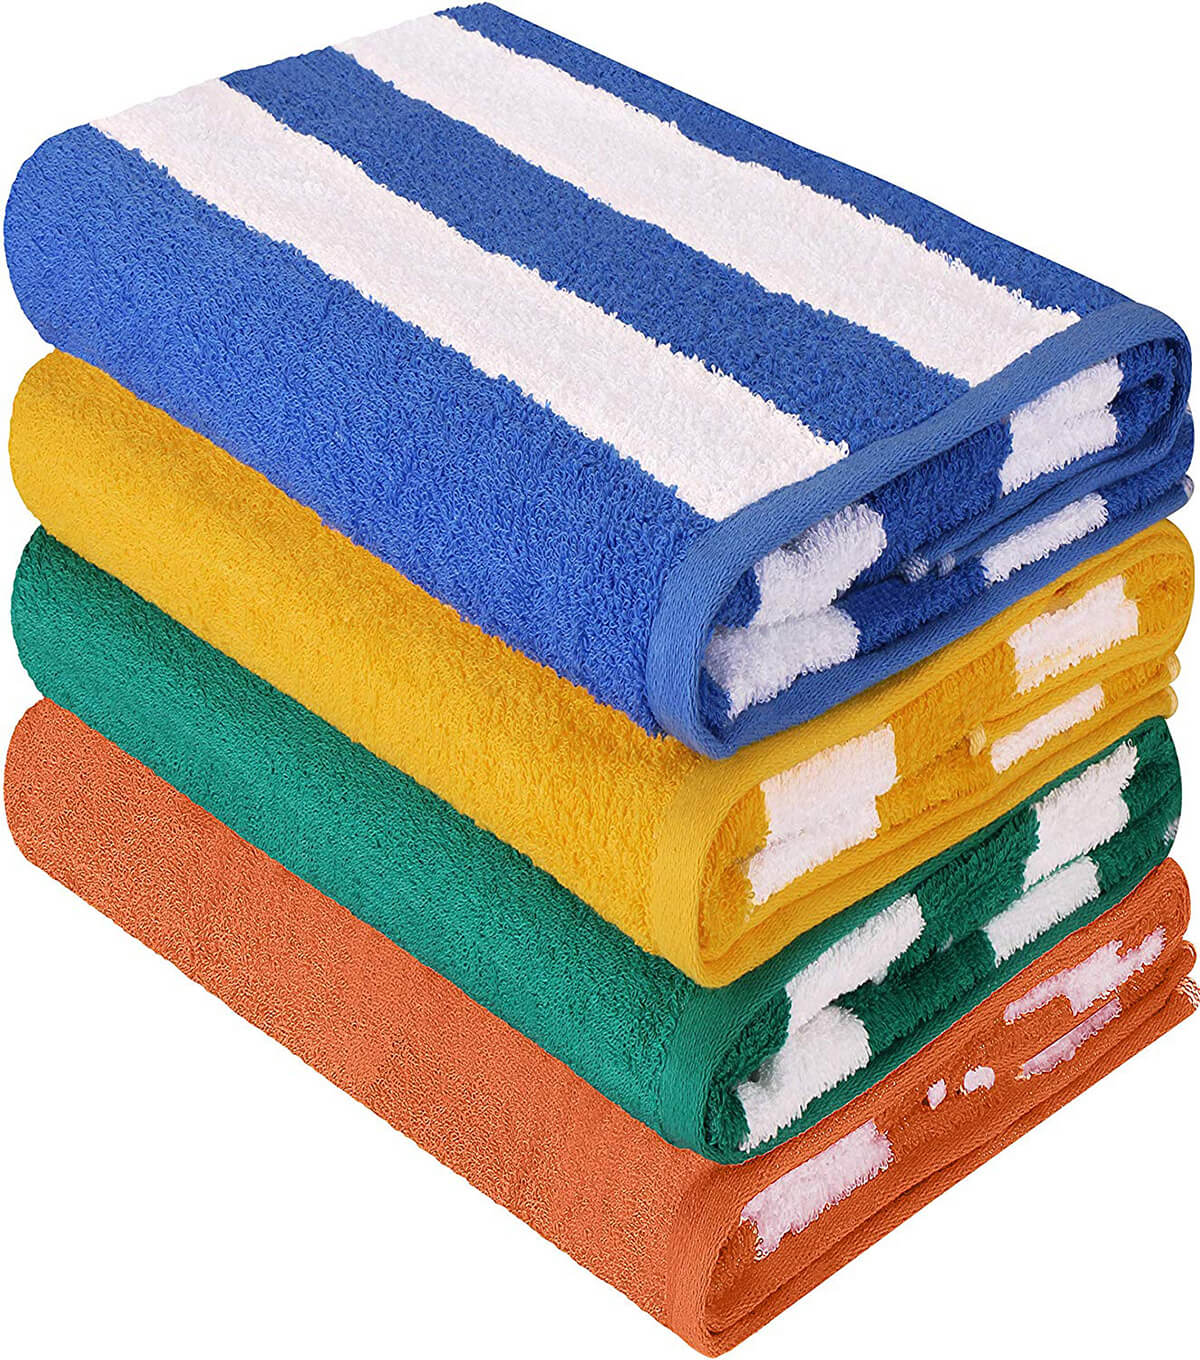 Cabana Stripe Beach Towels by Utopia Towels